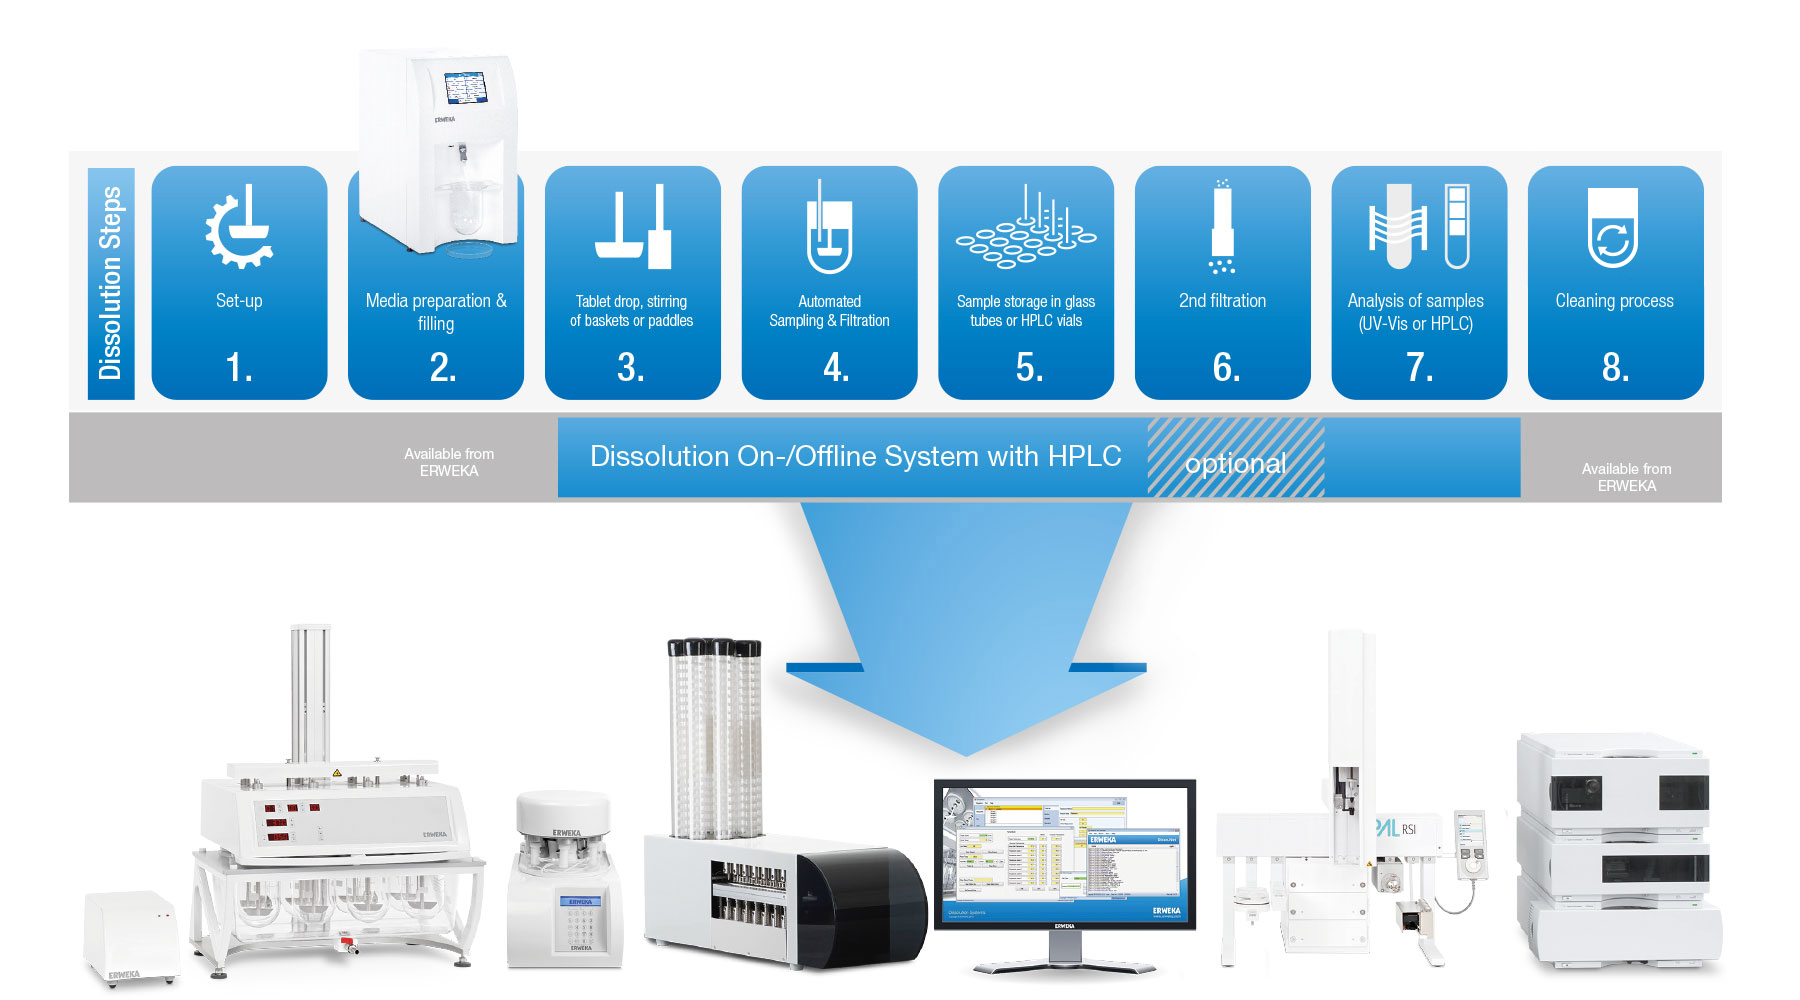 Semi-automated dissolution system with HPLC analysis